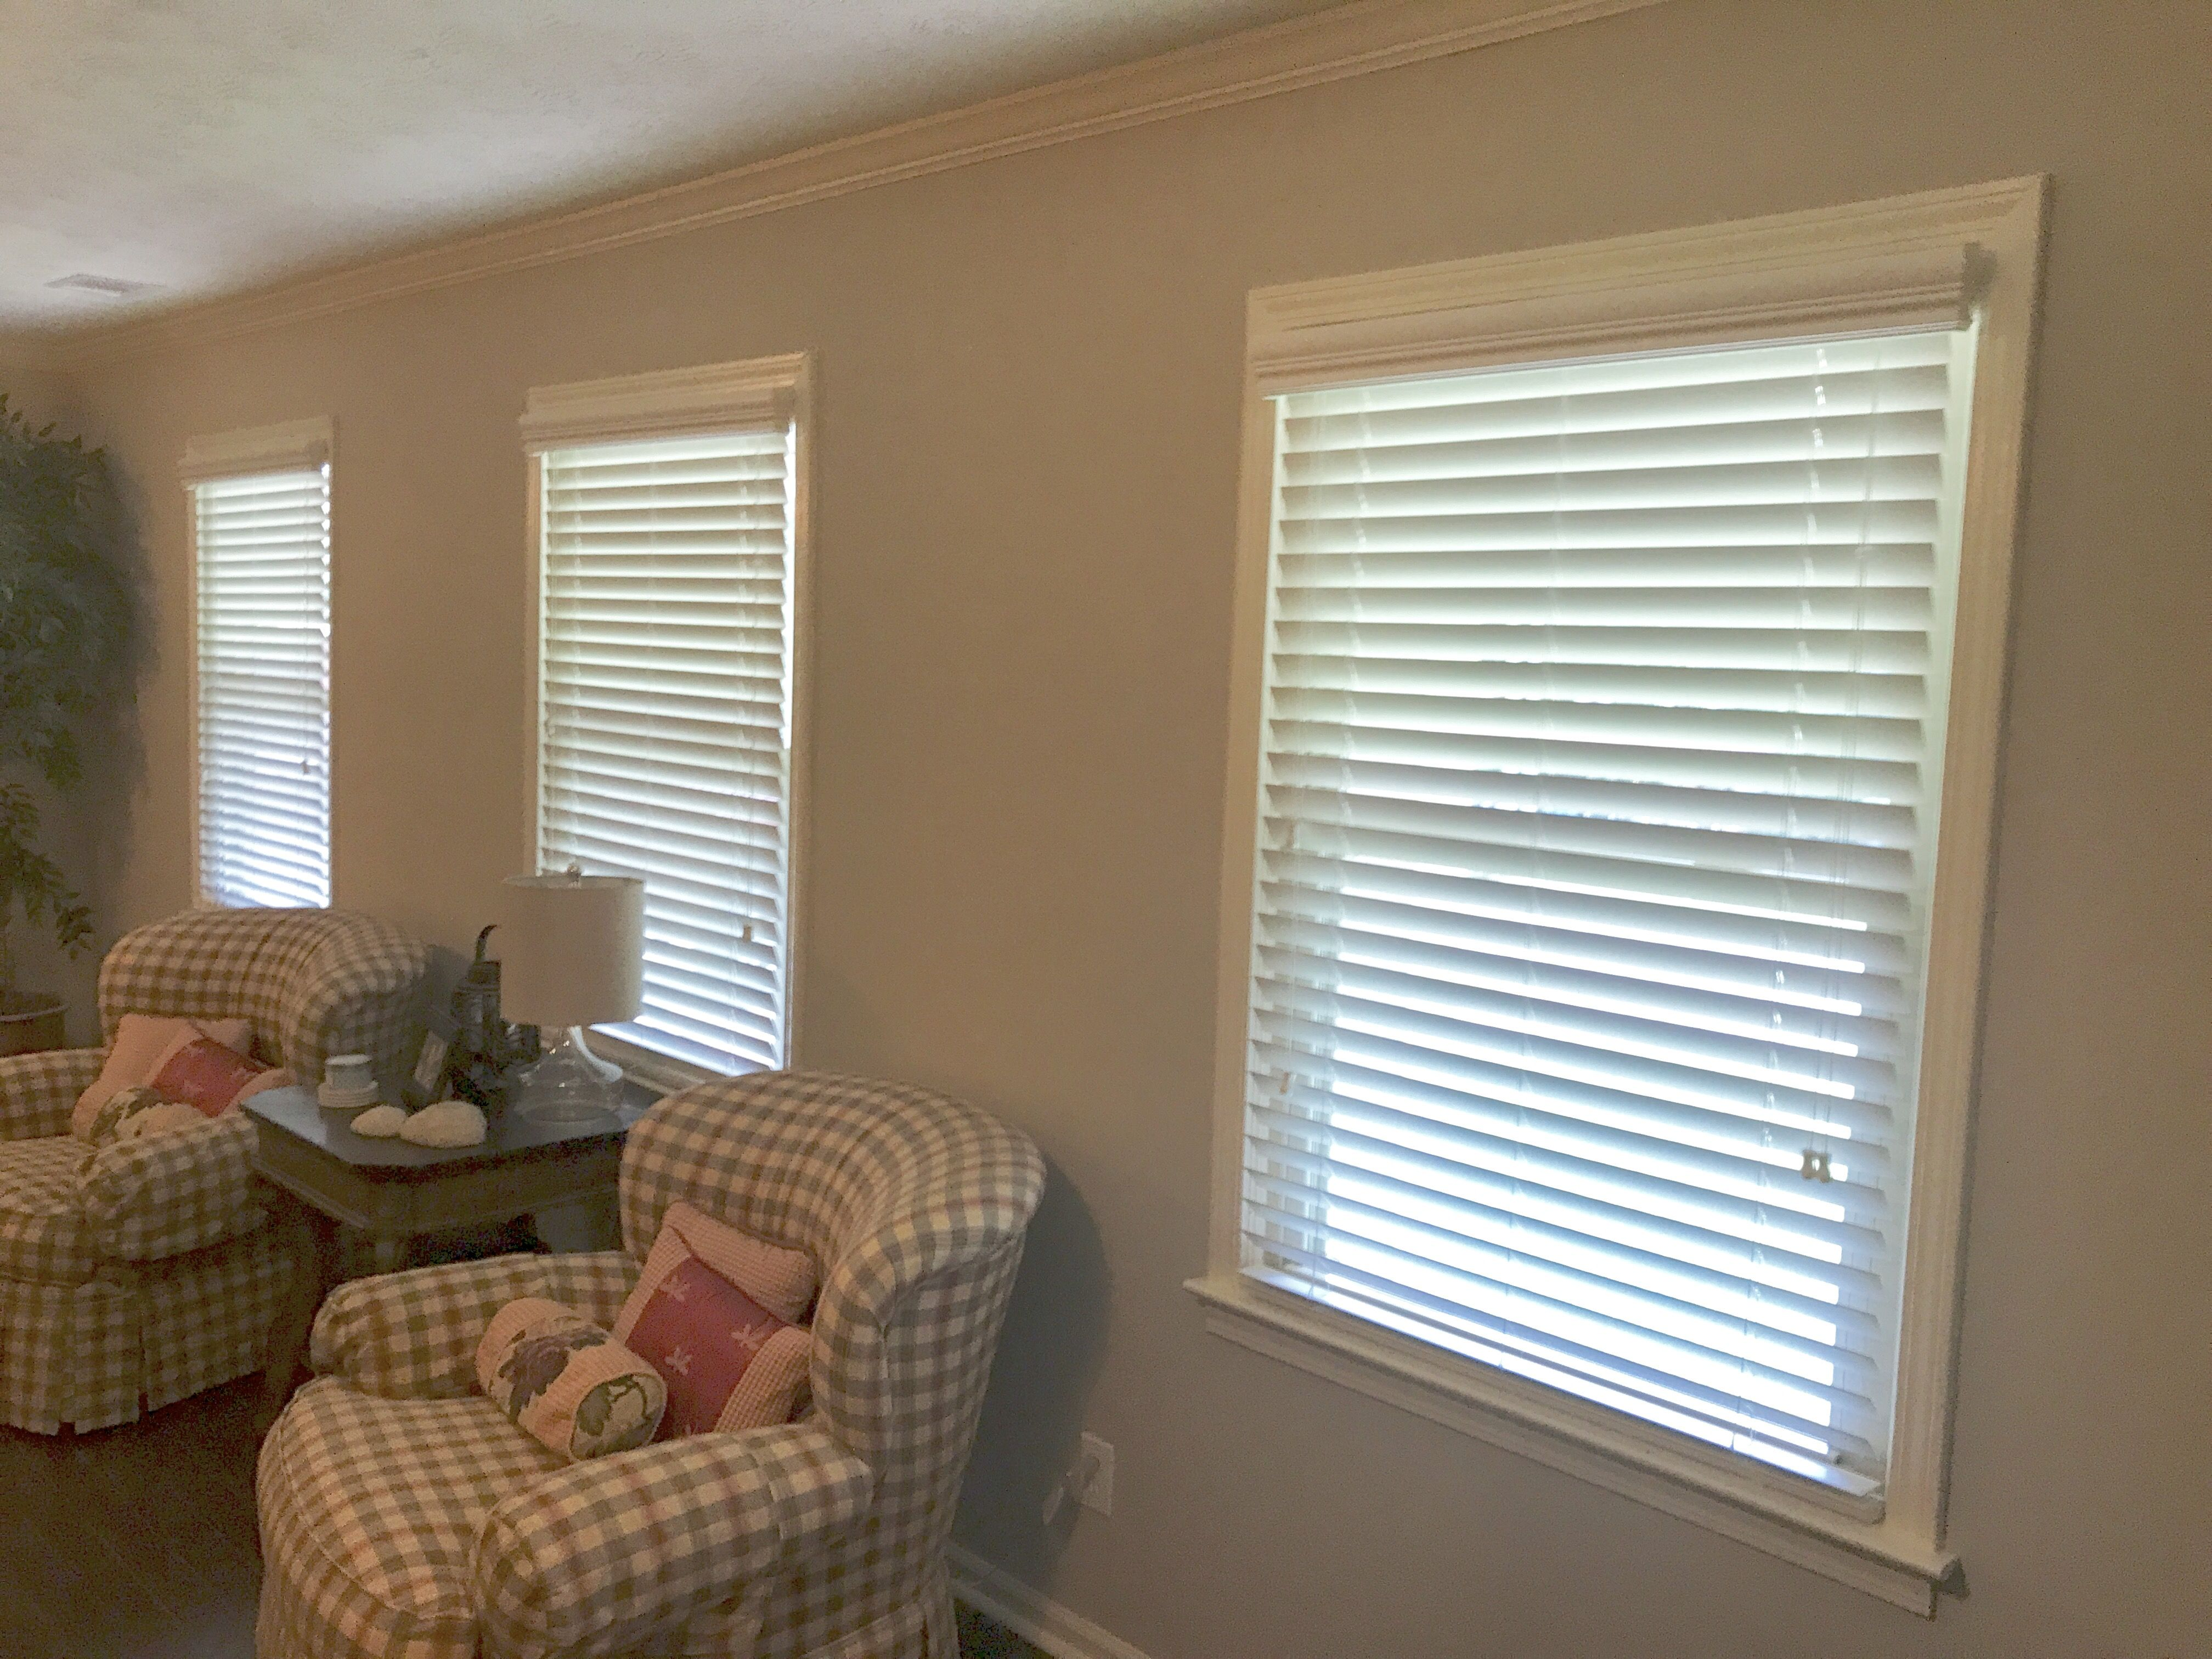 shades indoor awnings taydec shade blinds shutters